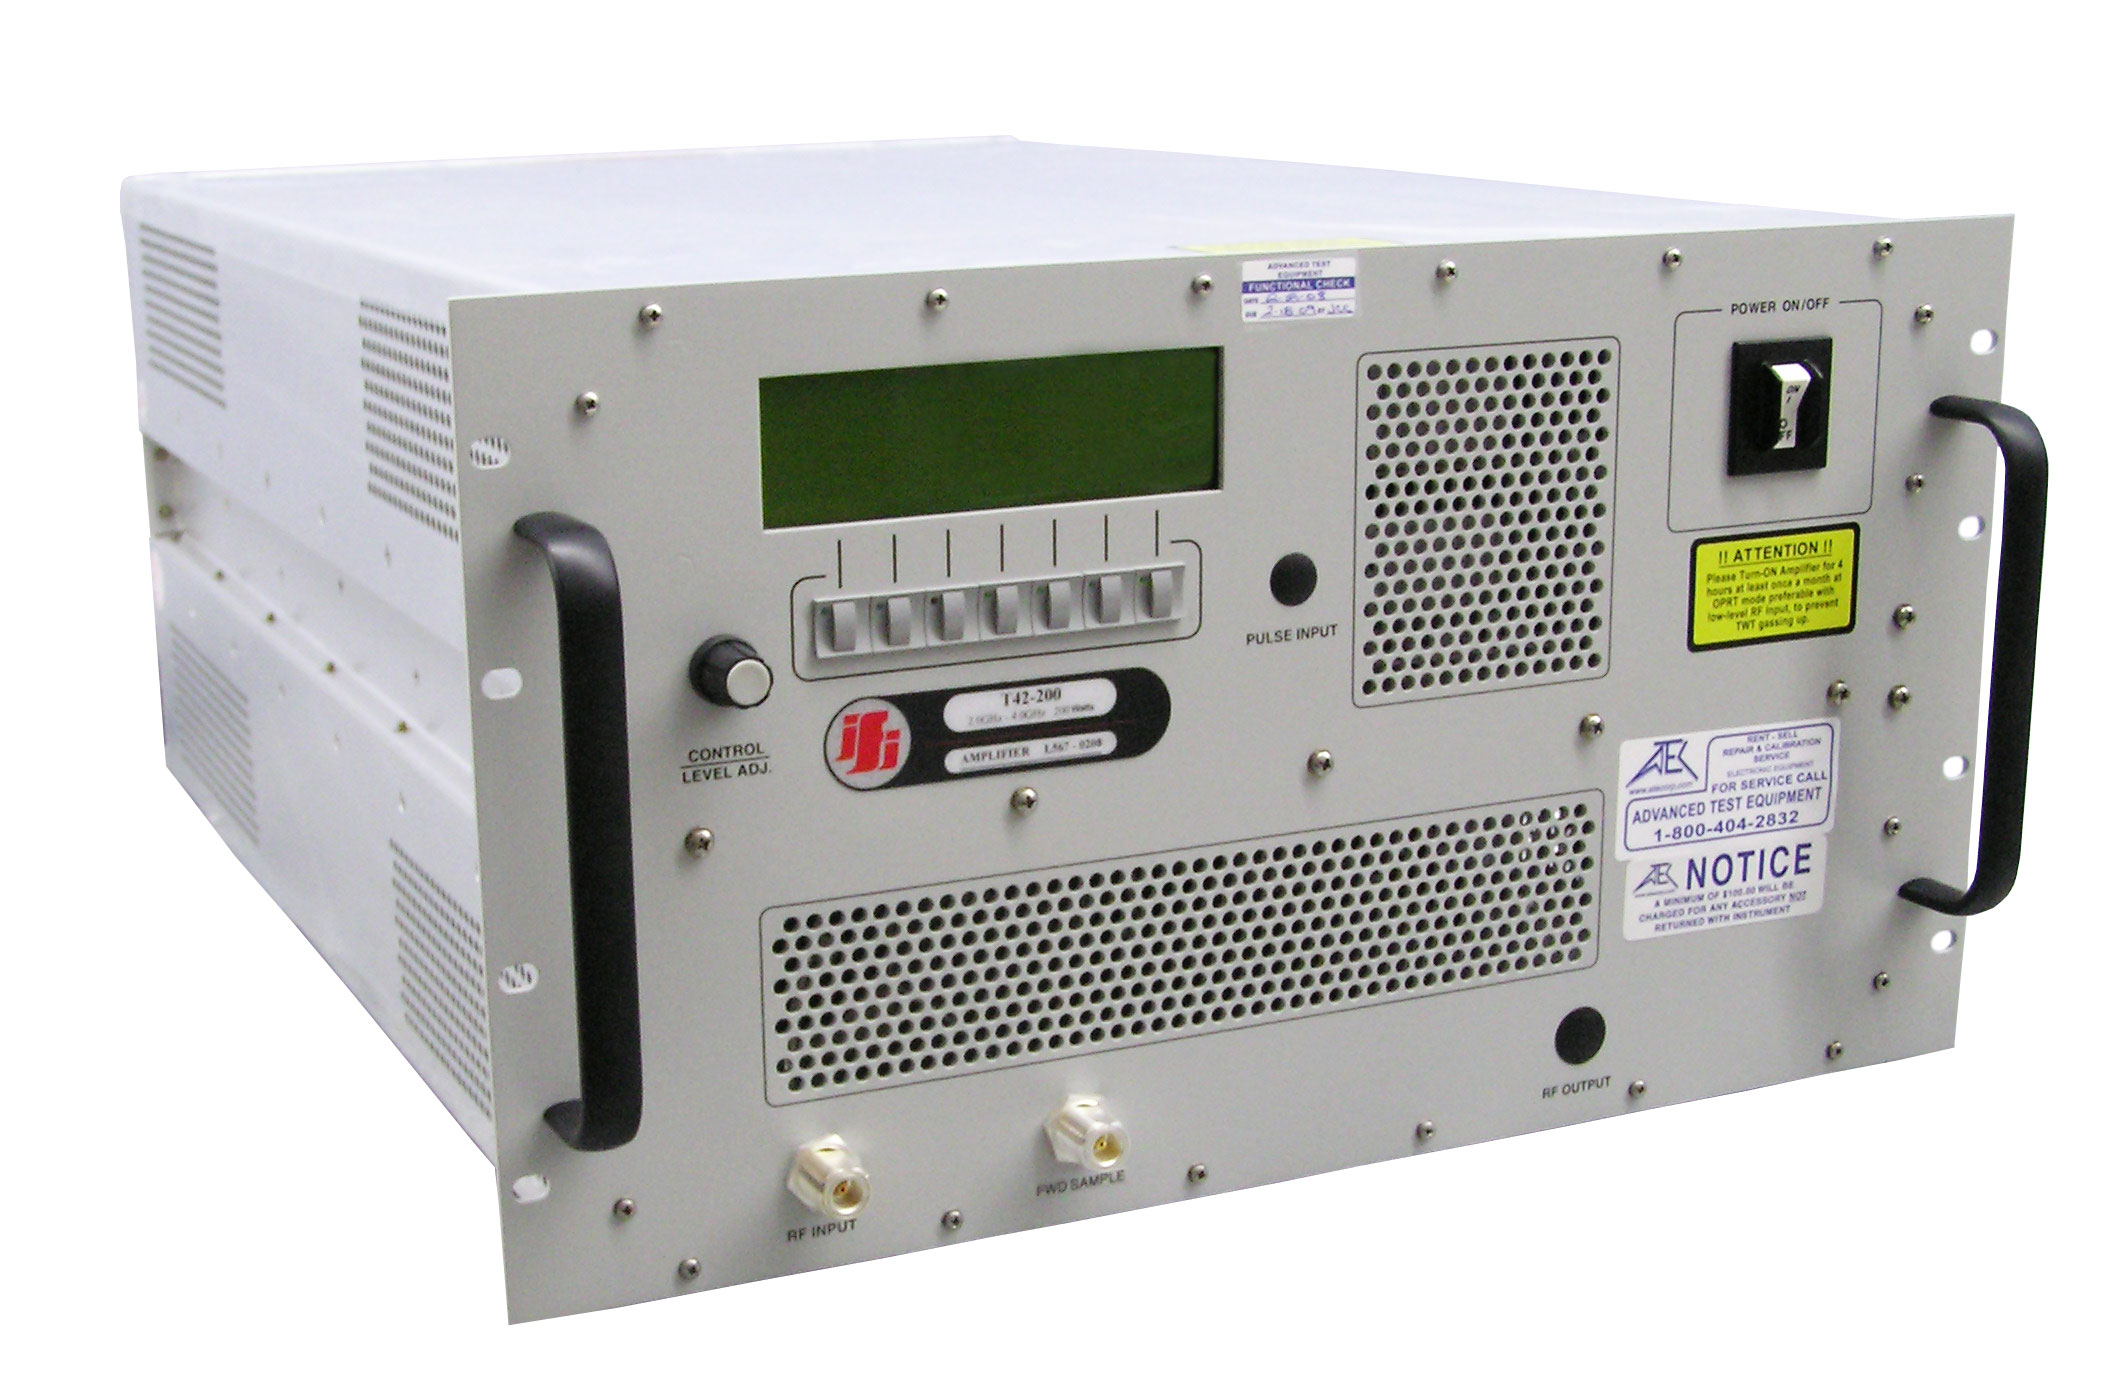 Rent IFI T42-500 High Power TWT Amplifier 2 GHz - 4 GHz, 500 Watt